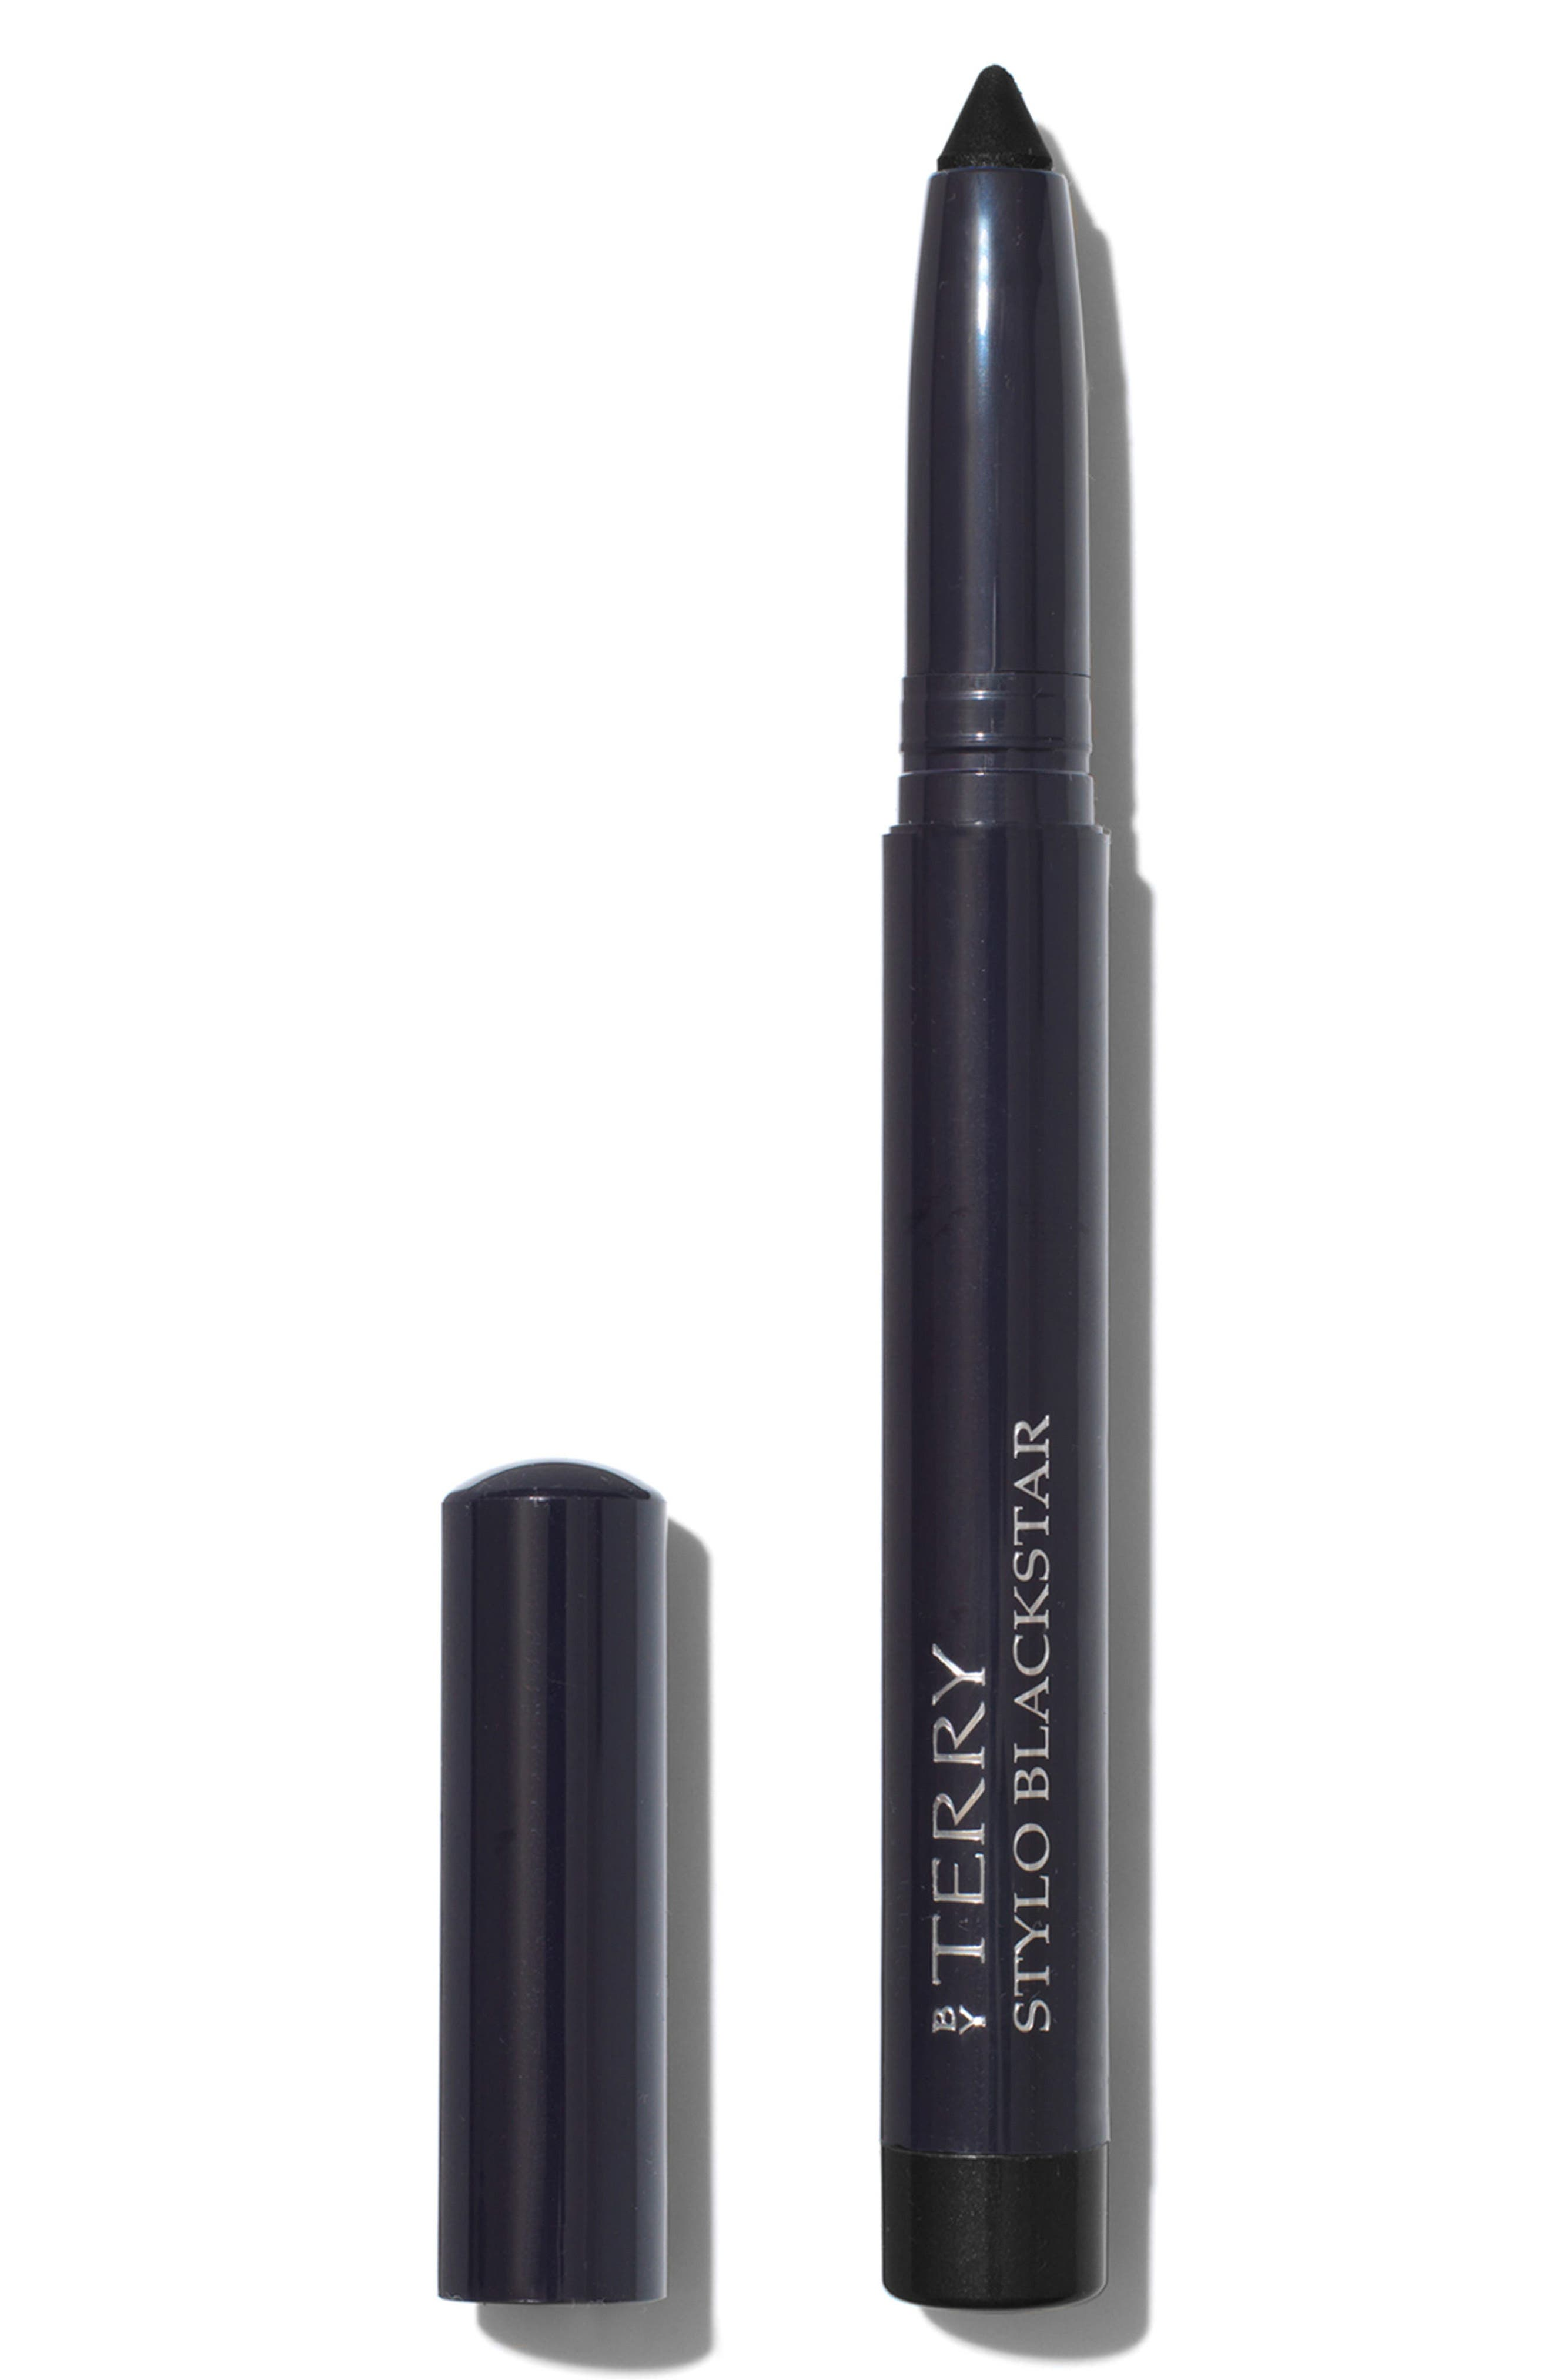 SPACE.NK.apothecary By Terry Stylo Blackstar Waterproof 3-in-1 Eye Pencil,                             Main thumbnail 1, color,                             1  SMOKY BLACK